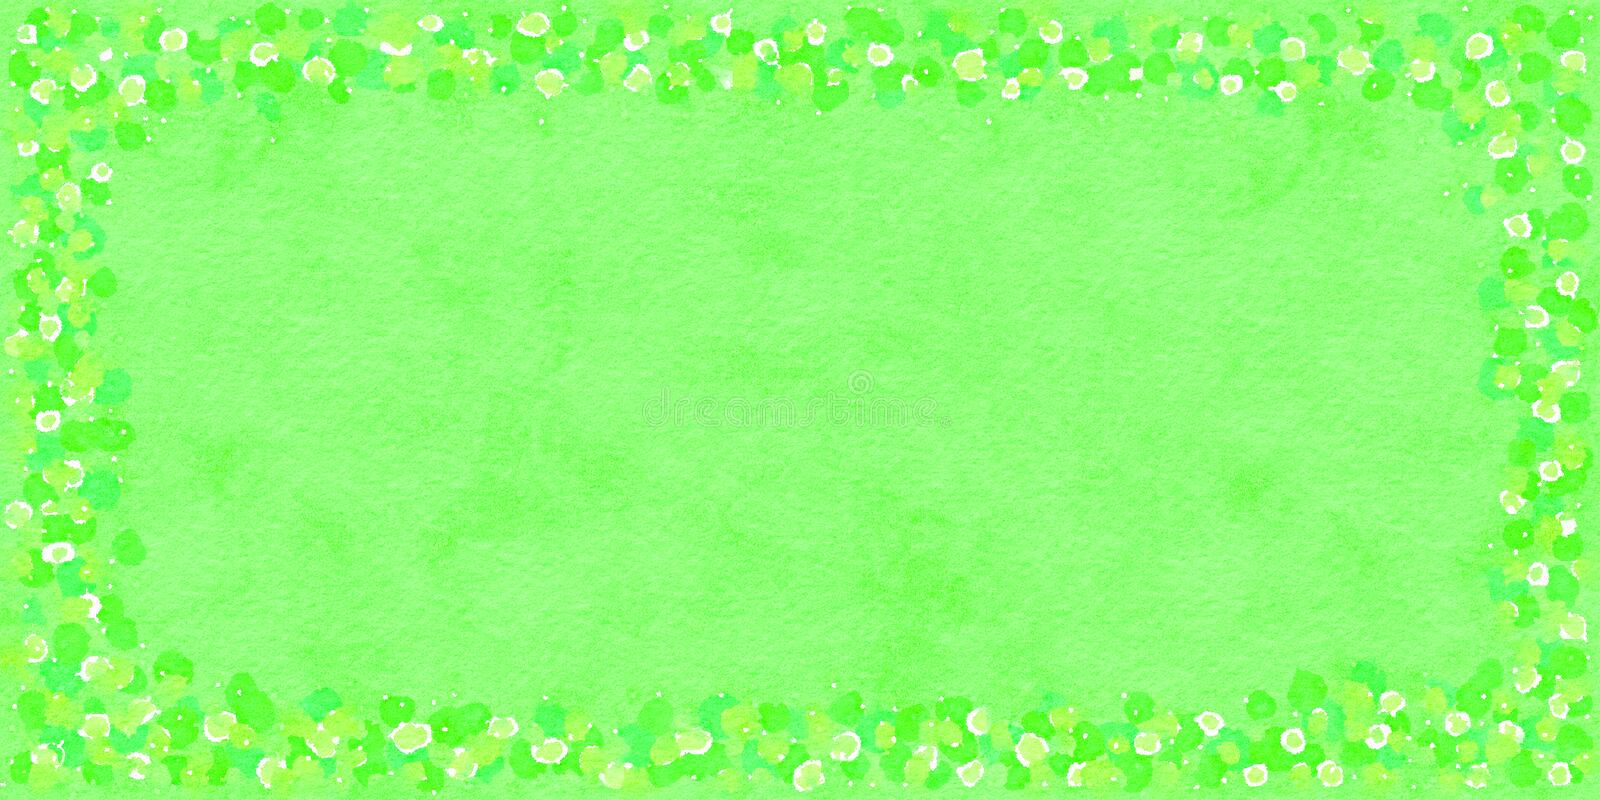 Decorative frame of round green and yellow elements on a bright green background. royalty free illustration